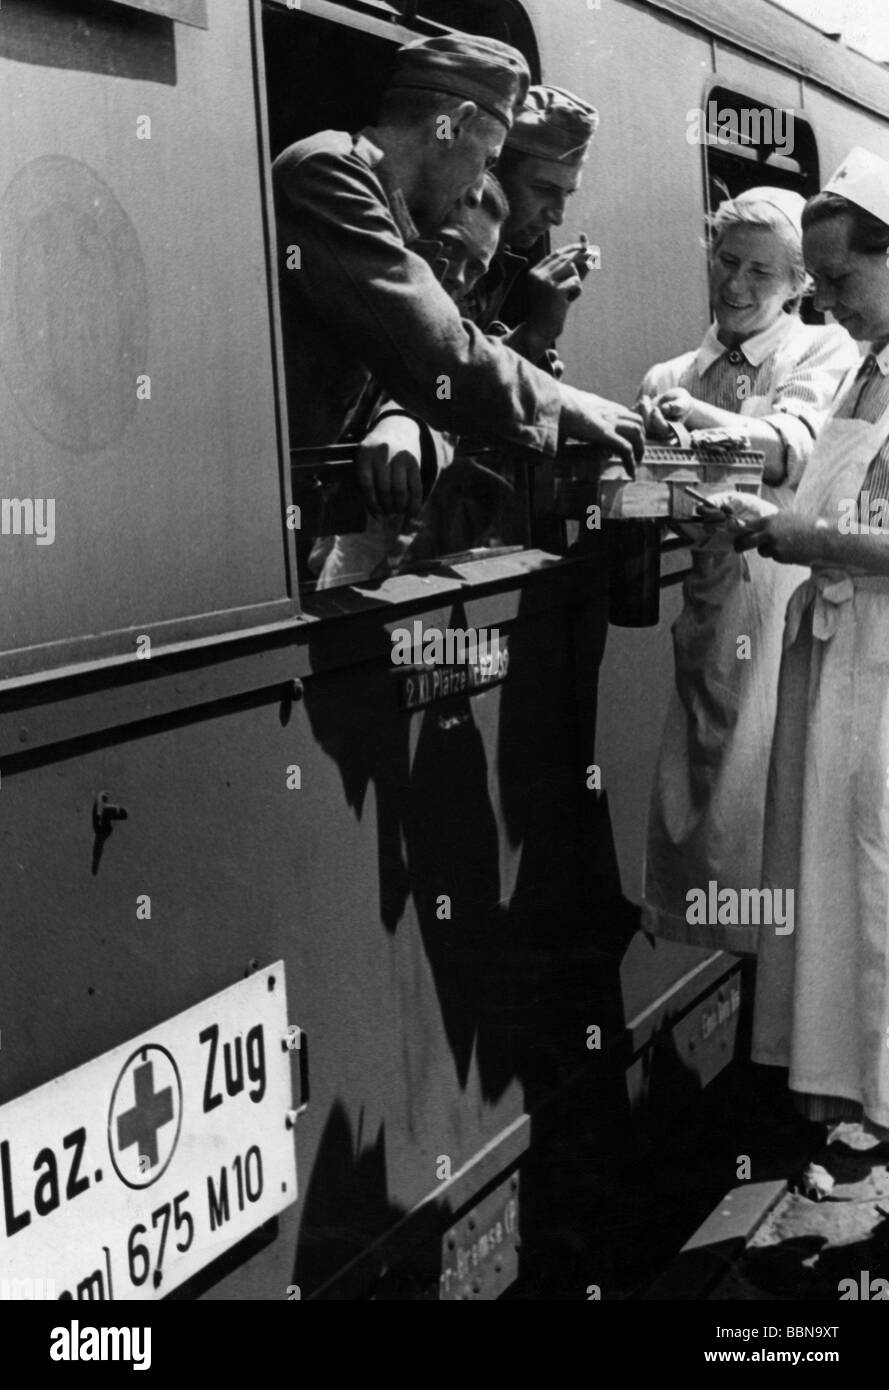 events, Second World War / WWII, Germany, medical service, nurses providing wounded soldiers from a German hospital - Stock Image